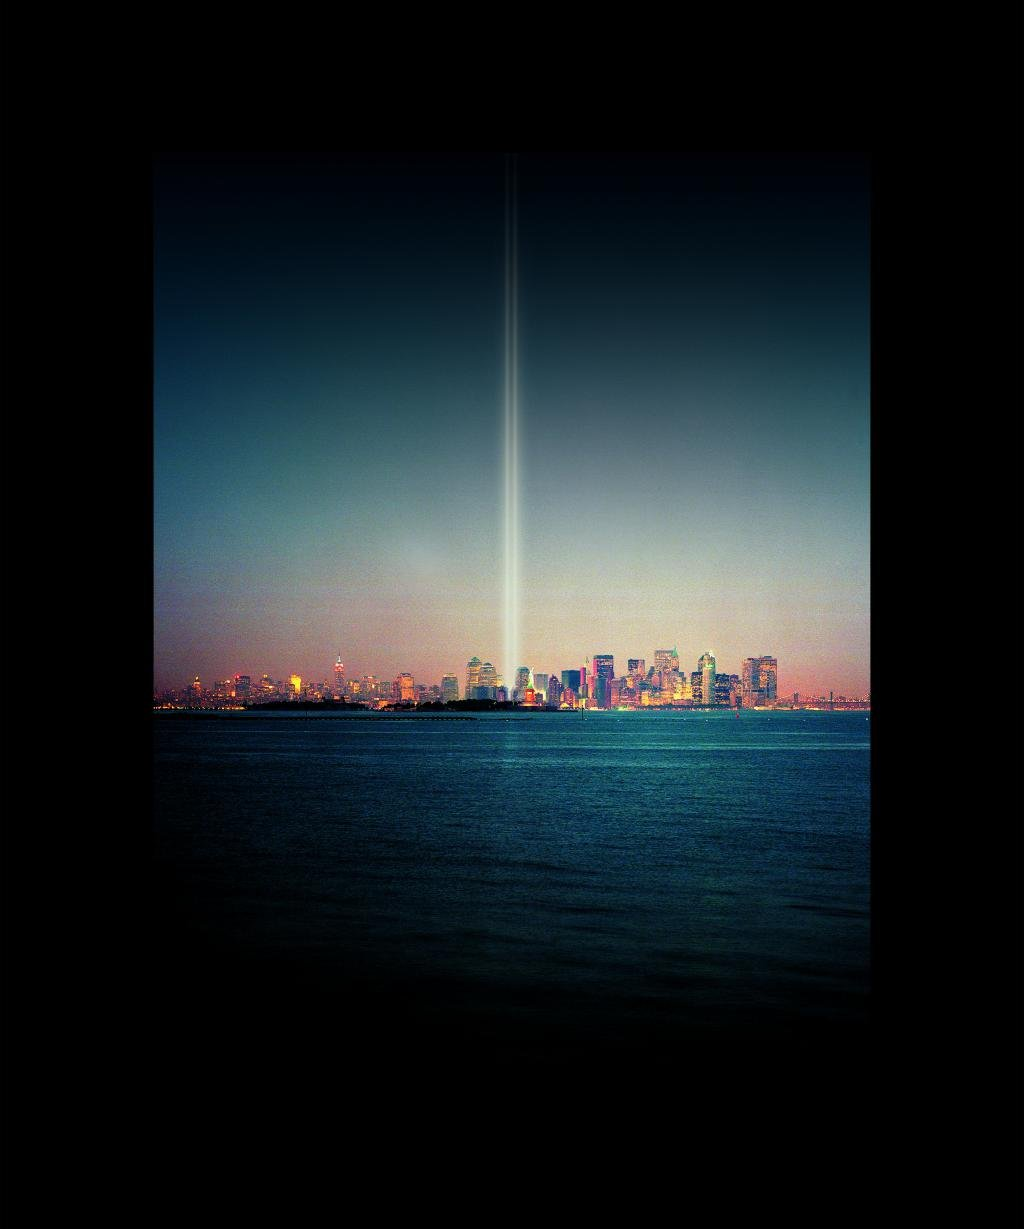 Julian LaVerdiere and Paul Myoda, Tribute in Light Over Liberty Island